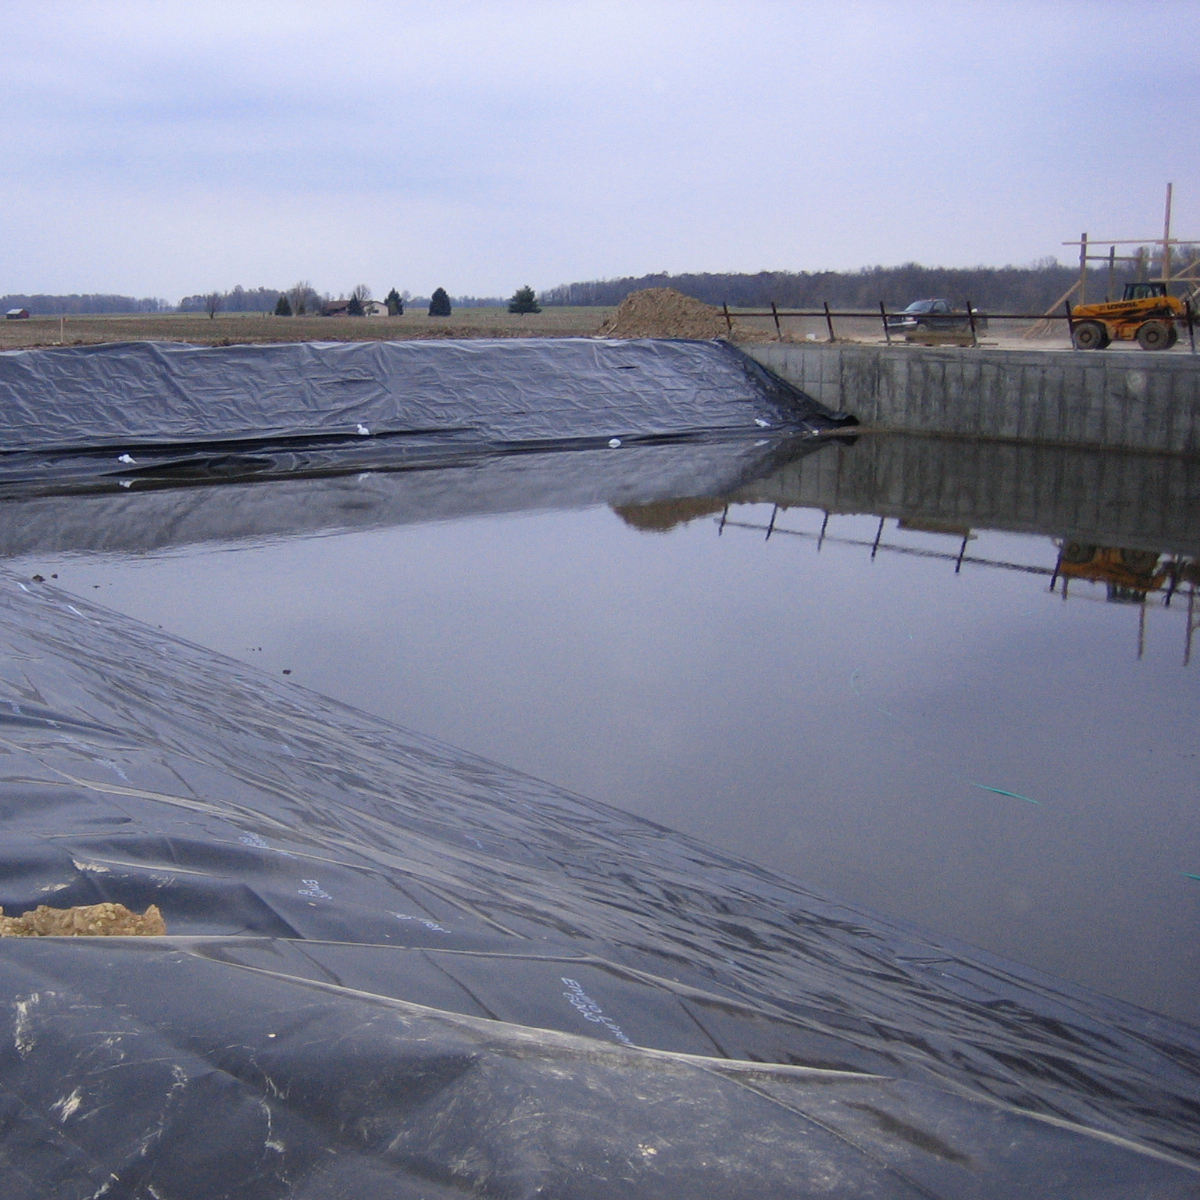 Geomembrane 40 mils 0.5mm 1.0mm 1.5mm 2.0mm pond liner hdpe lldpe waterproof membrane ldpe sheet